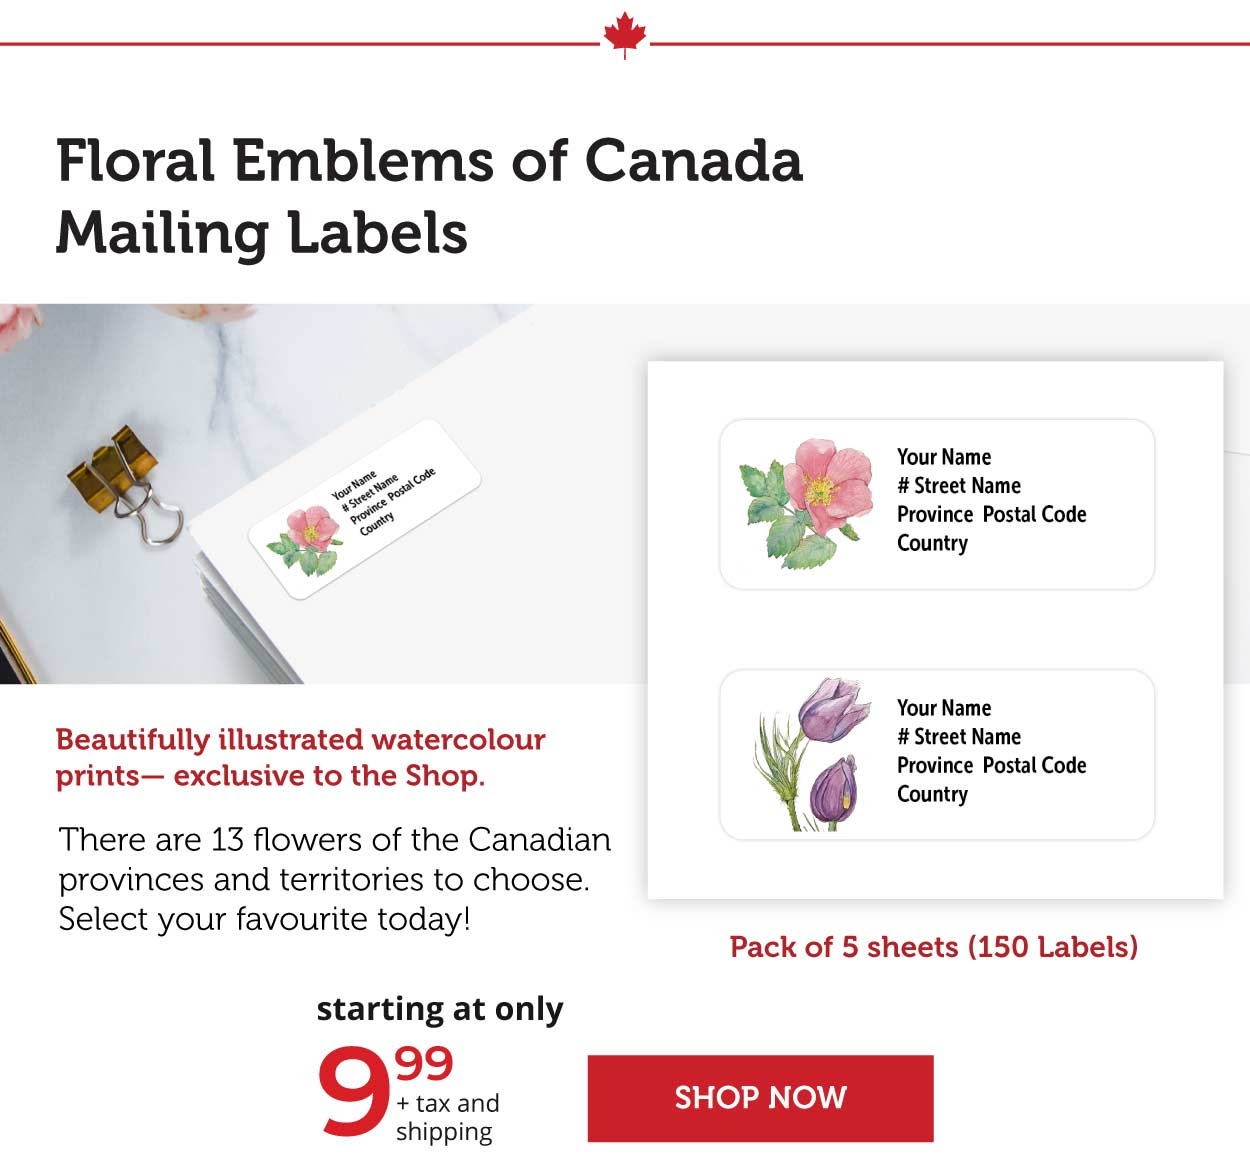 Floral Emblems of Canada- mailing Labels